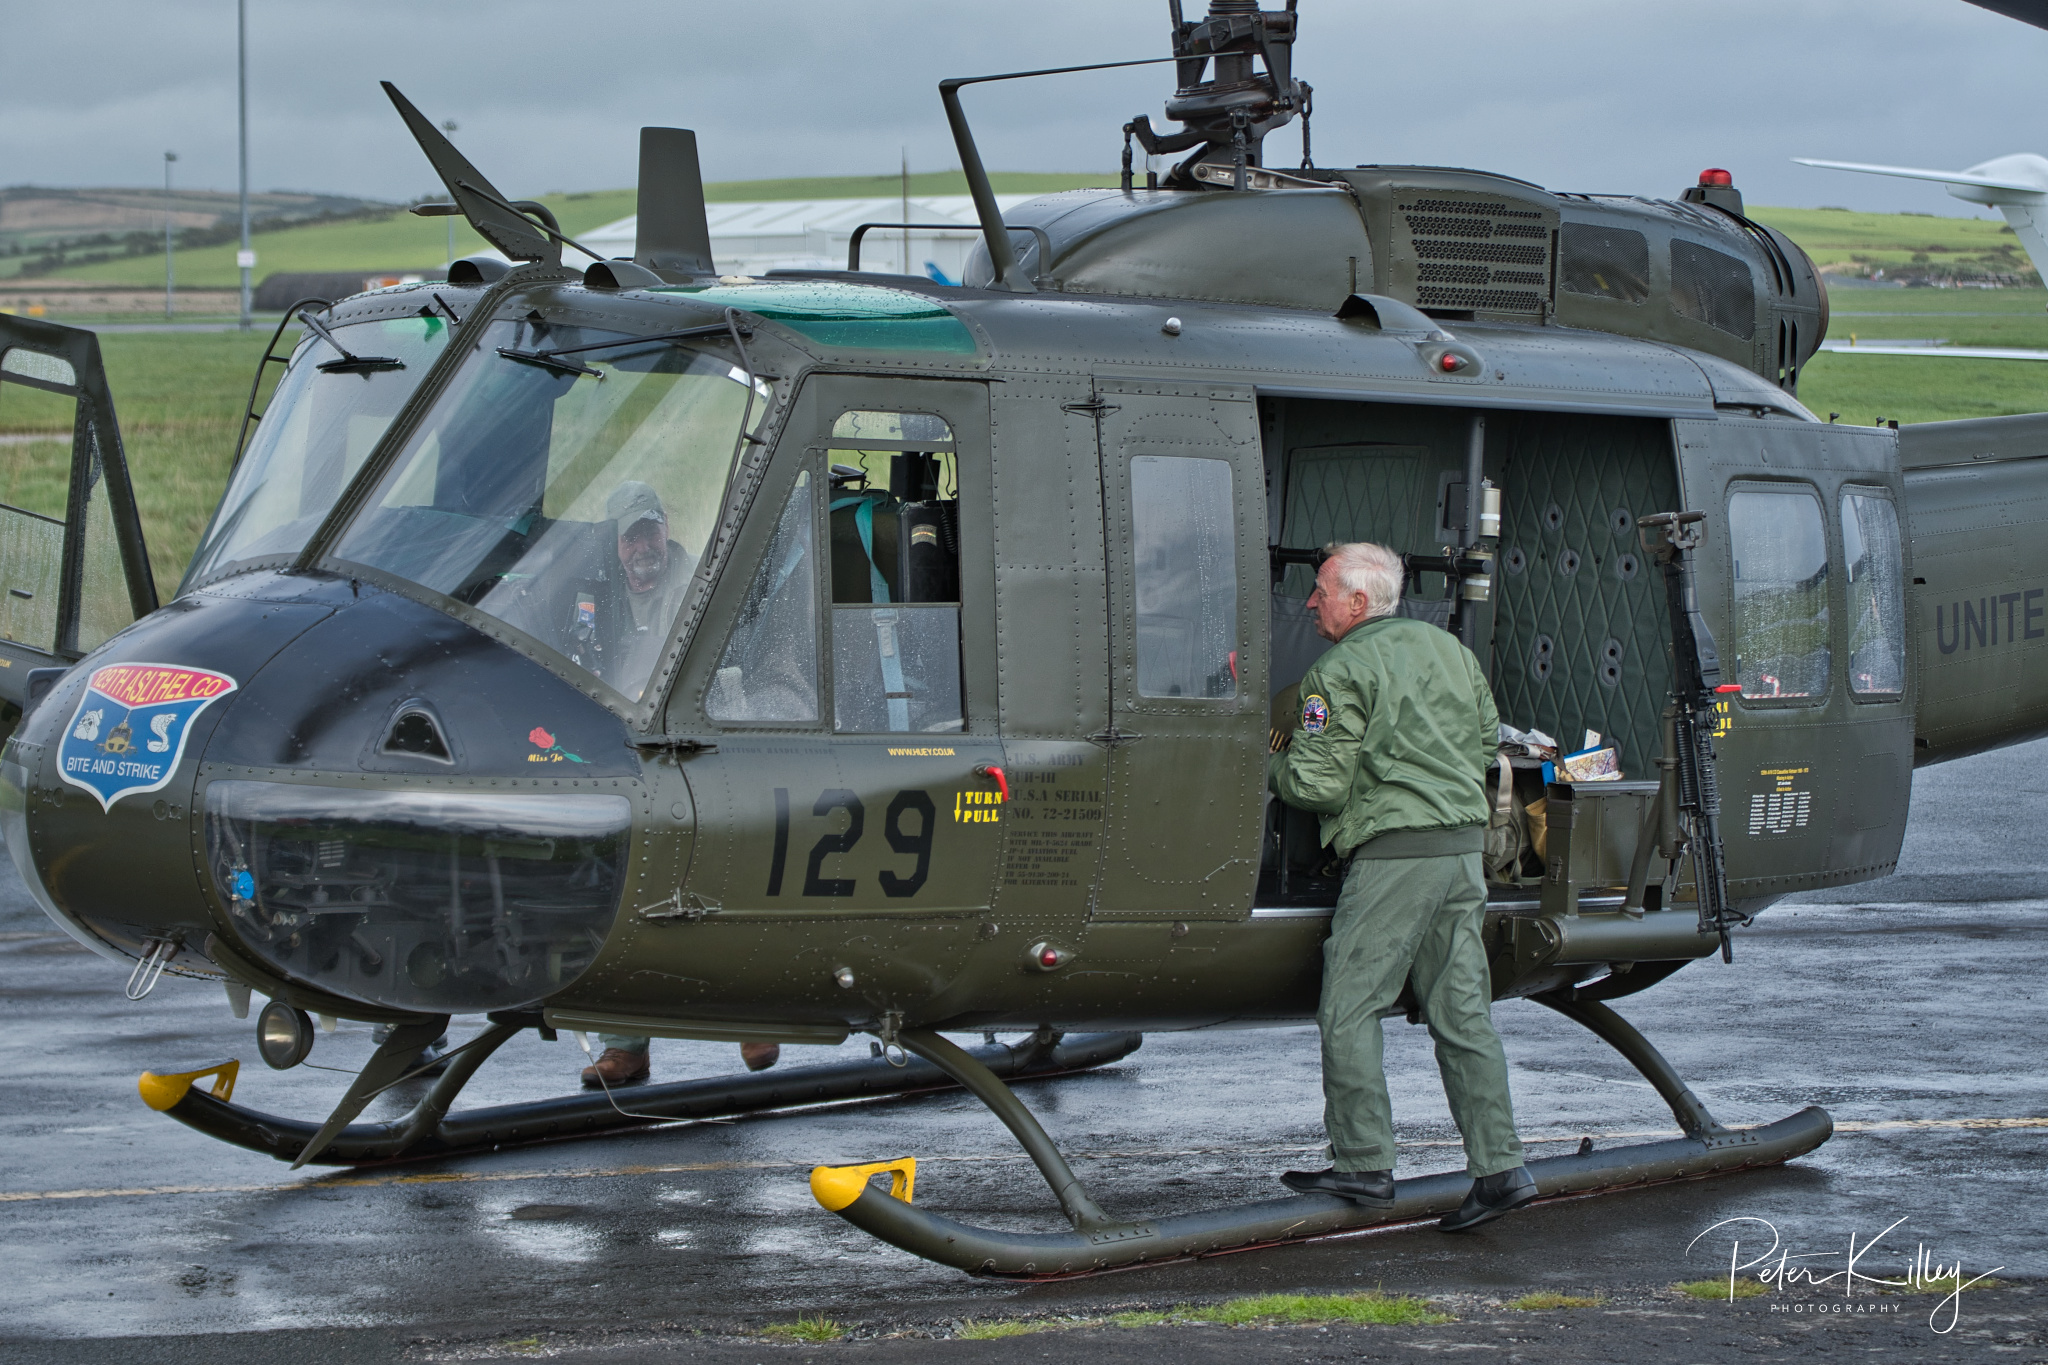 A former Vietnam Huey at Ronaldsway Airport © Peter Killey - www.manxscenes.com